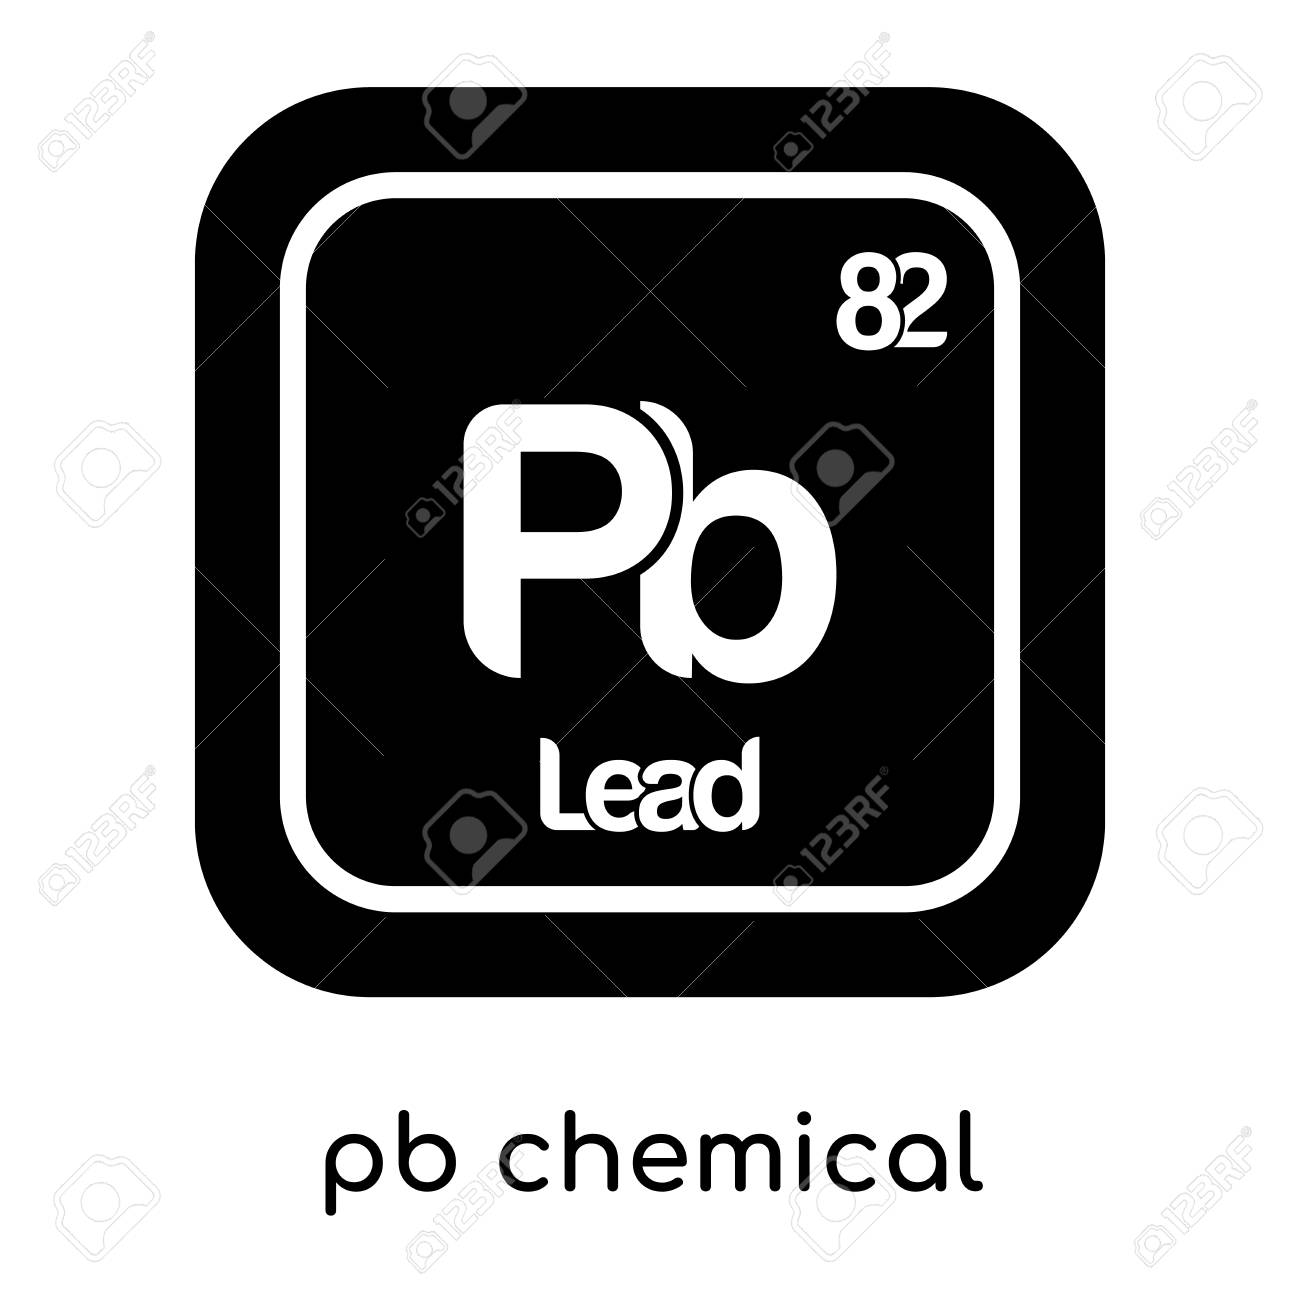 pb chemical symbol isolated on white background for your web